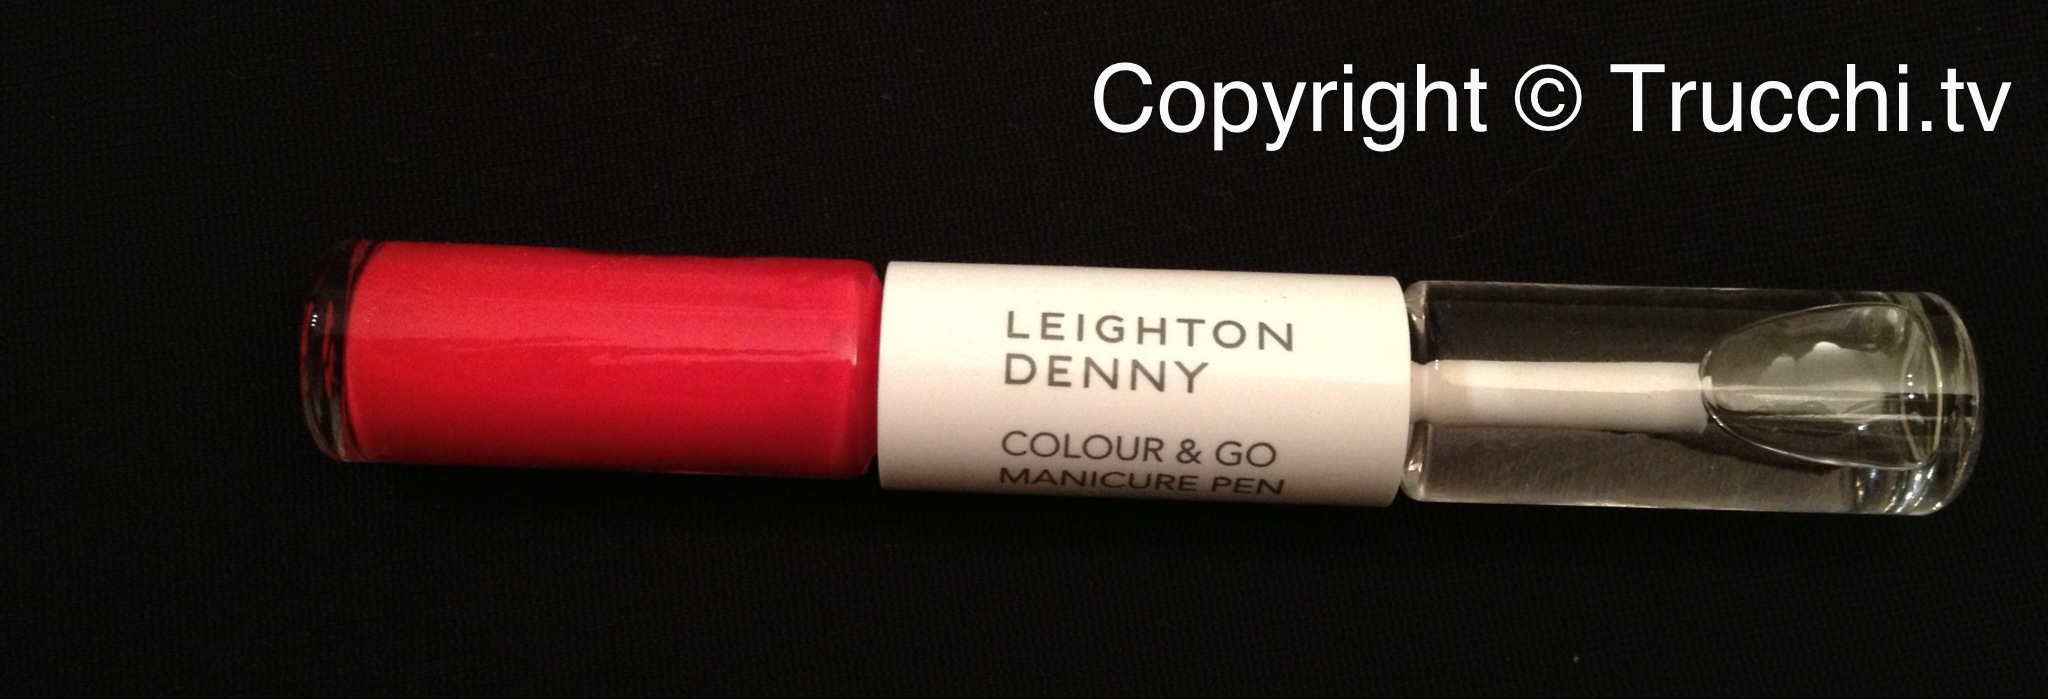 smalto Leighton Denny colour and go manicure pen I love Juicy